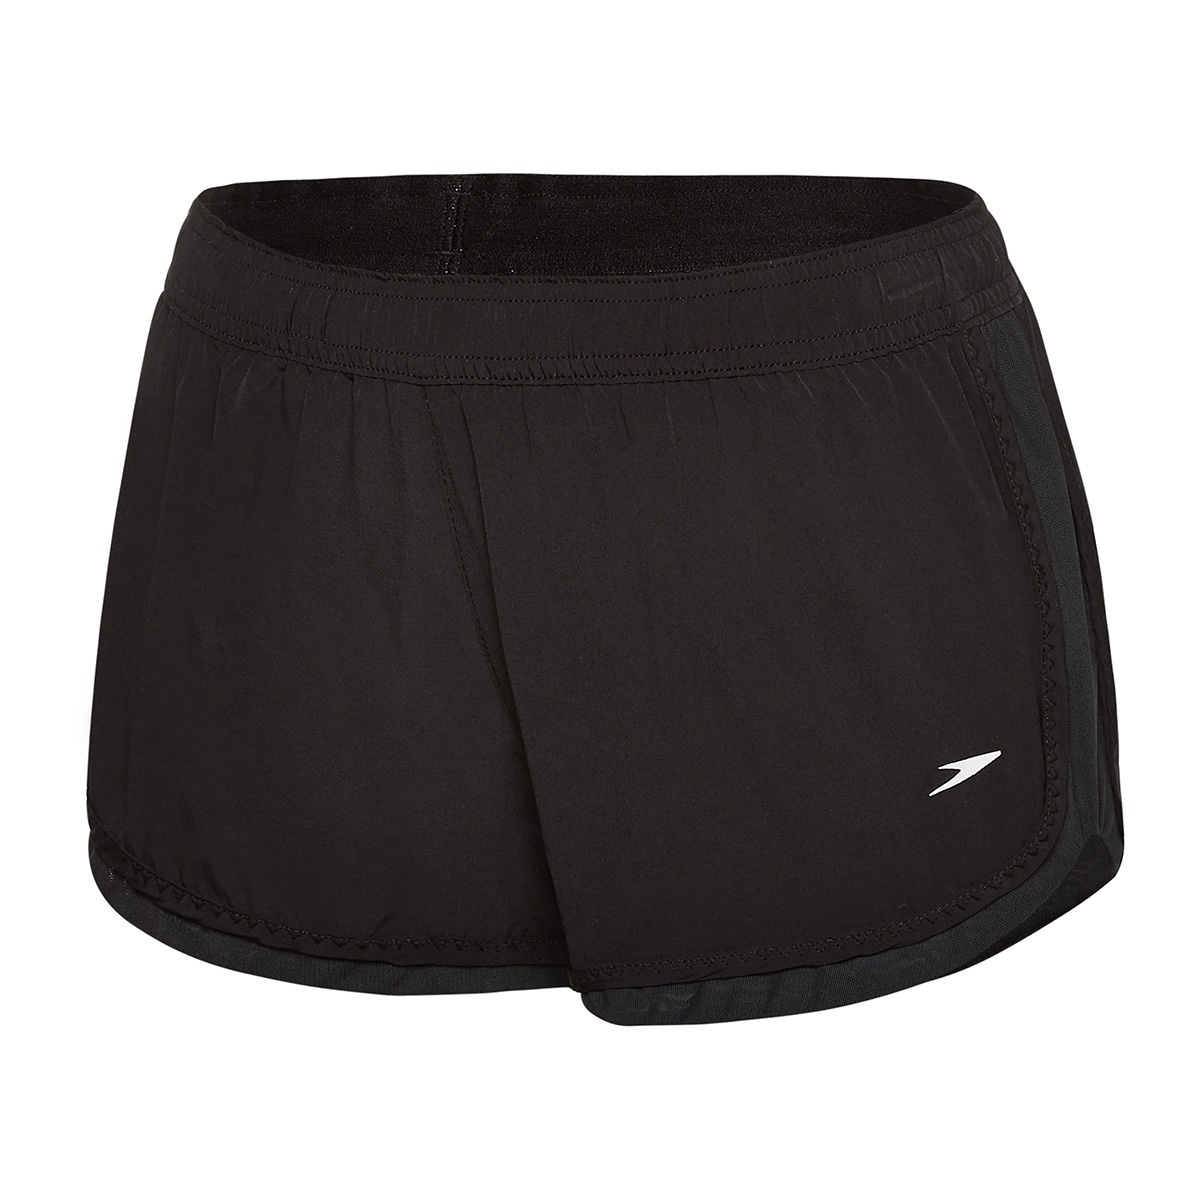 Womens Classic Training Short Black